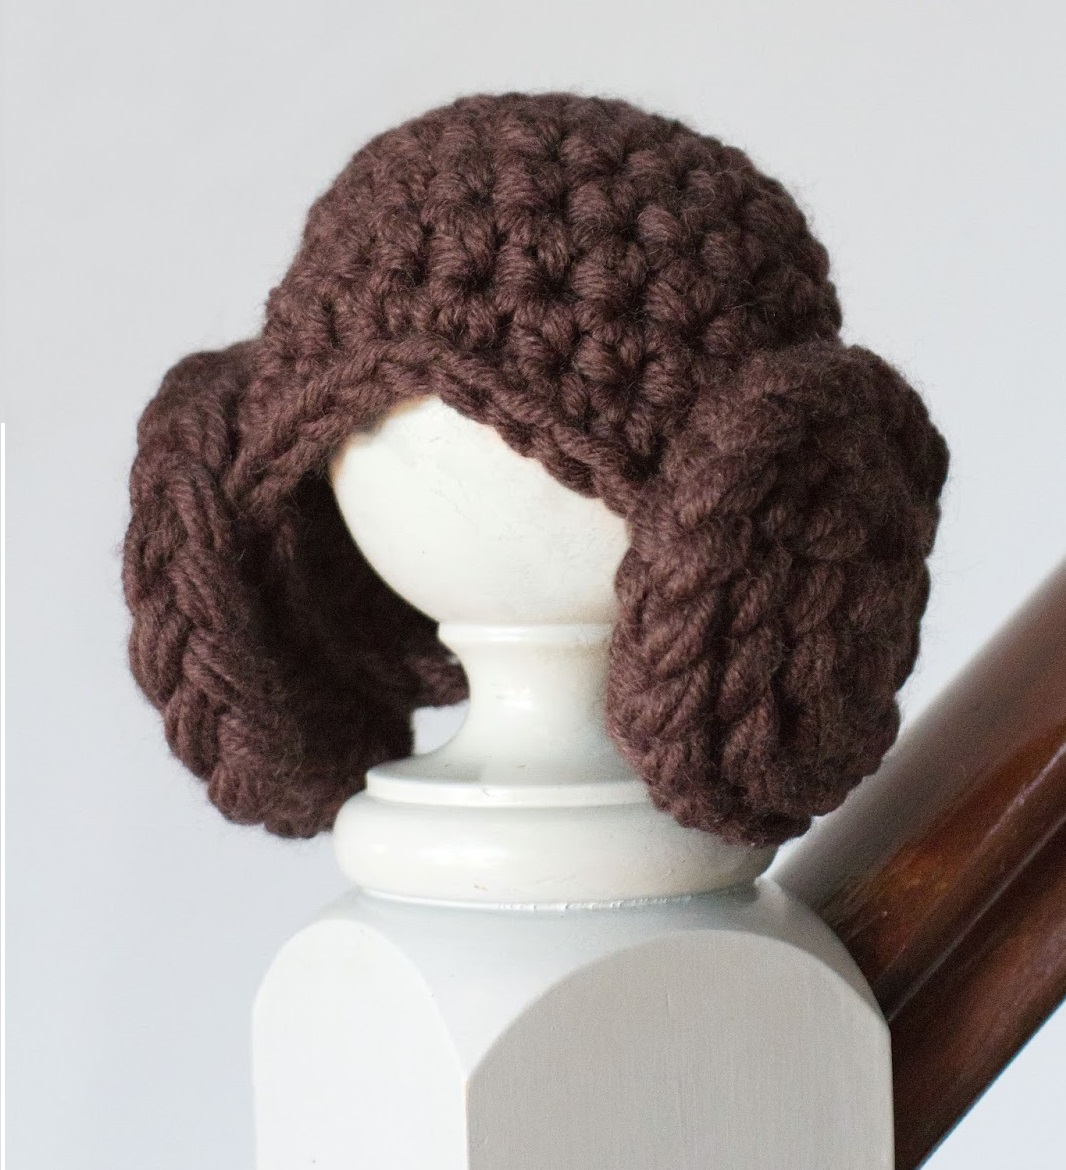 Free Crochet Pattern Star Wars : The Star Wars Crochet Patterns Youre Looking For - Stitch ...